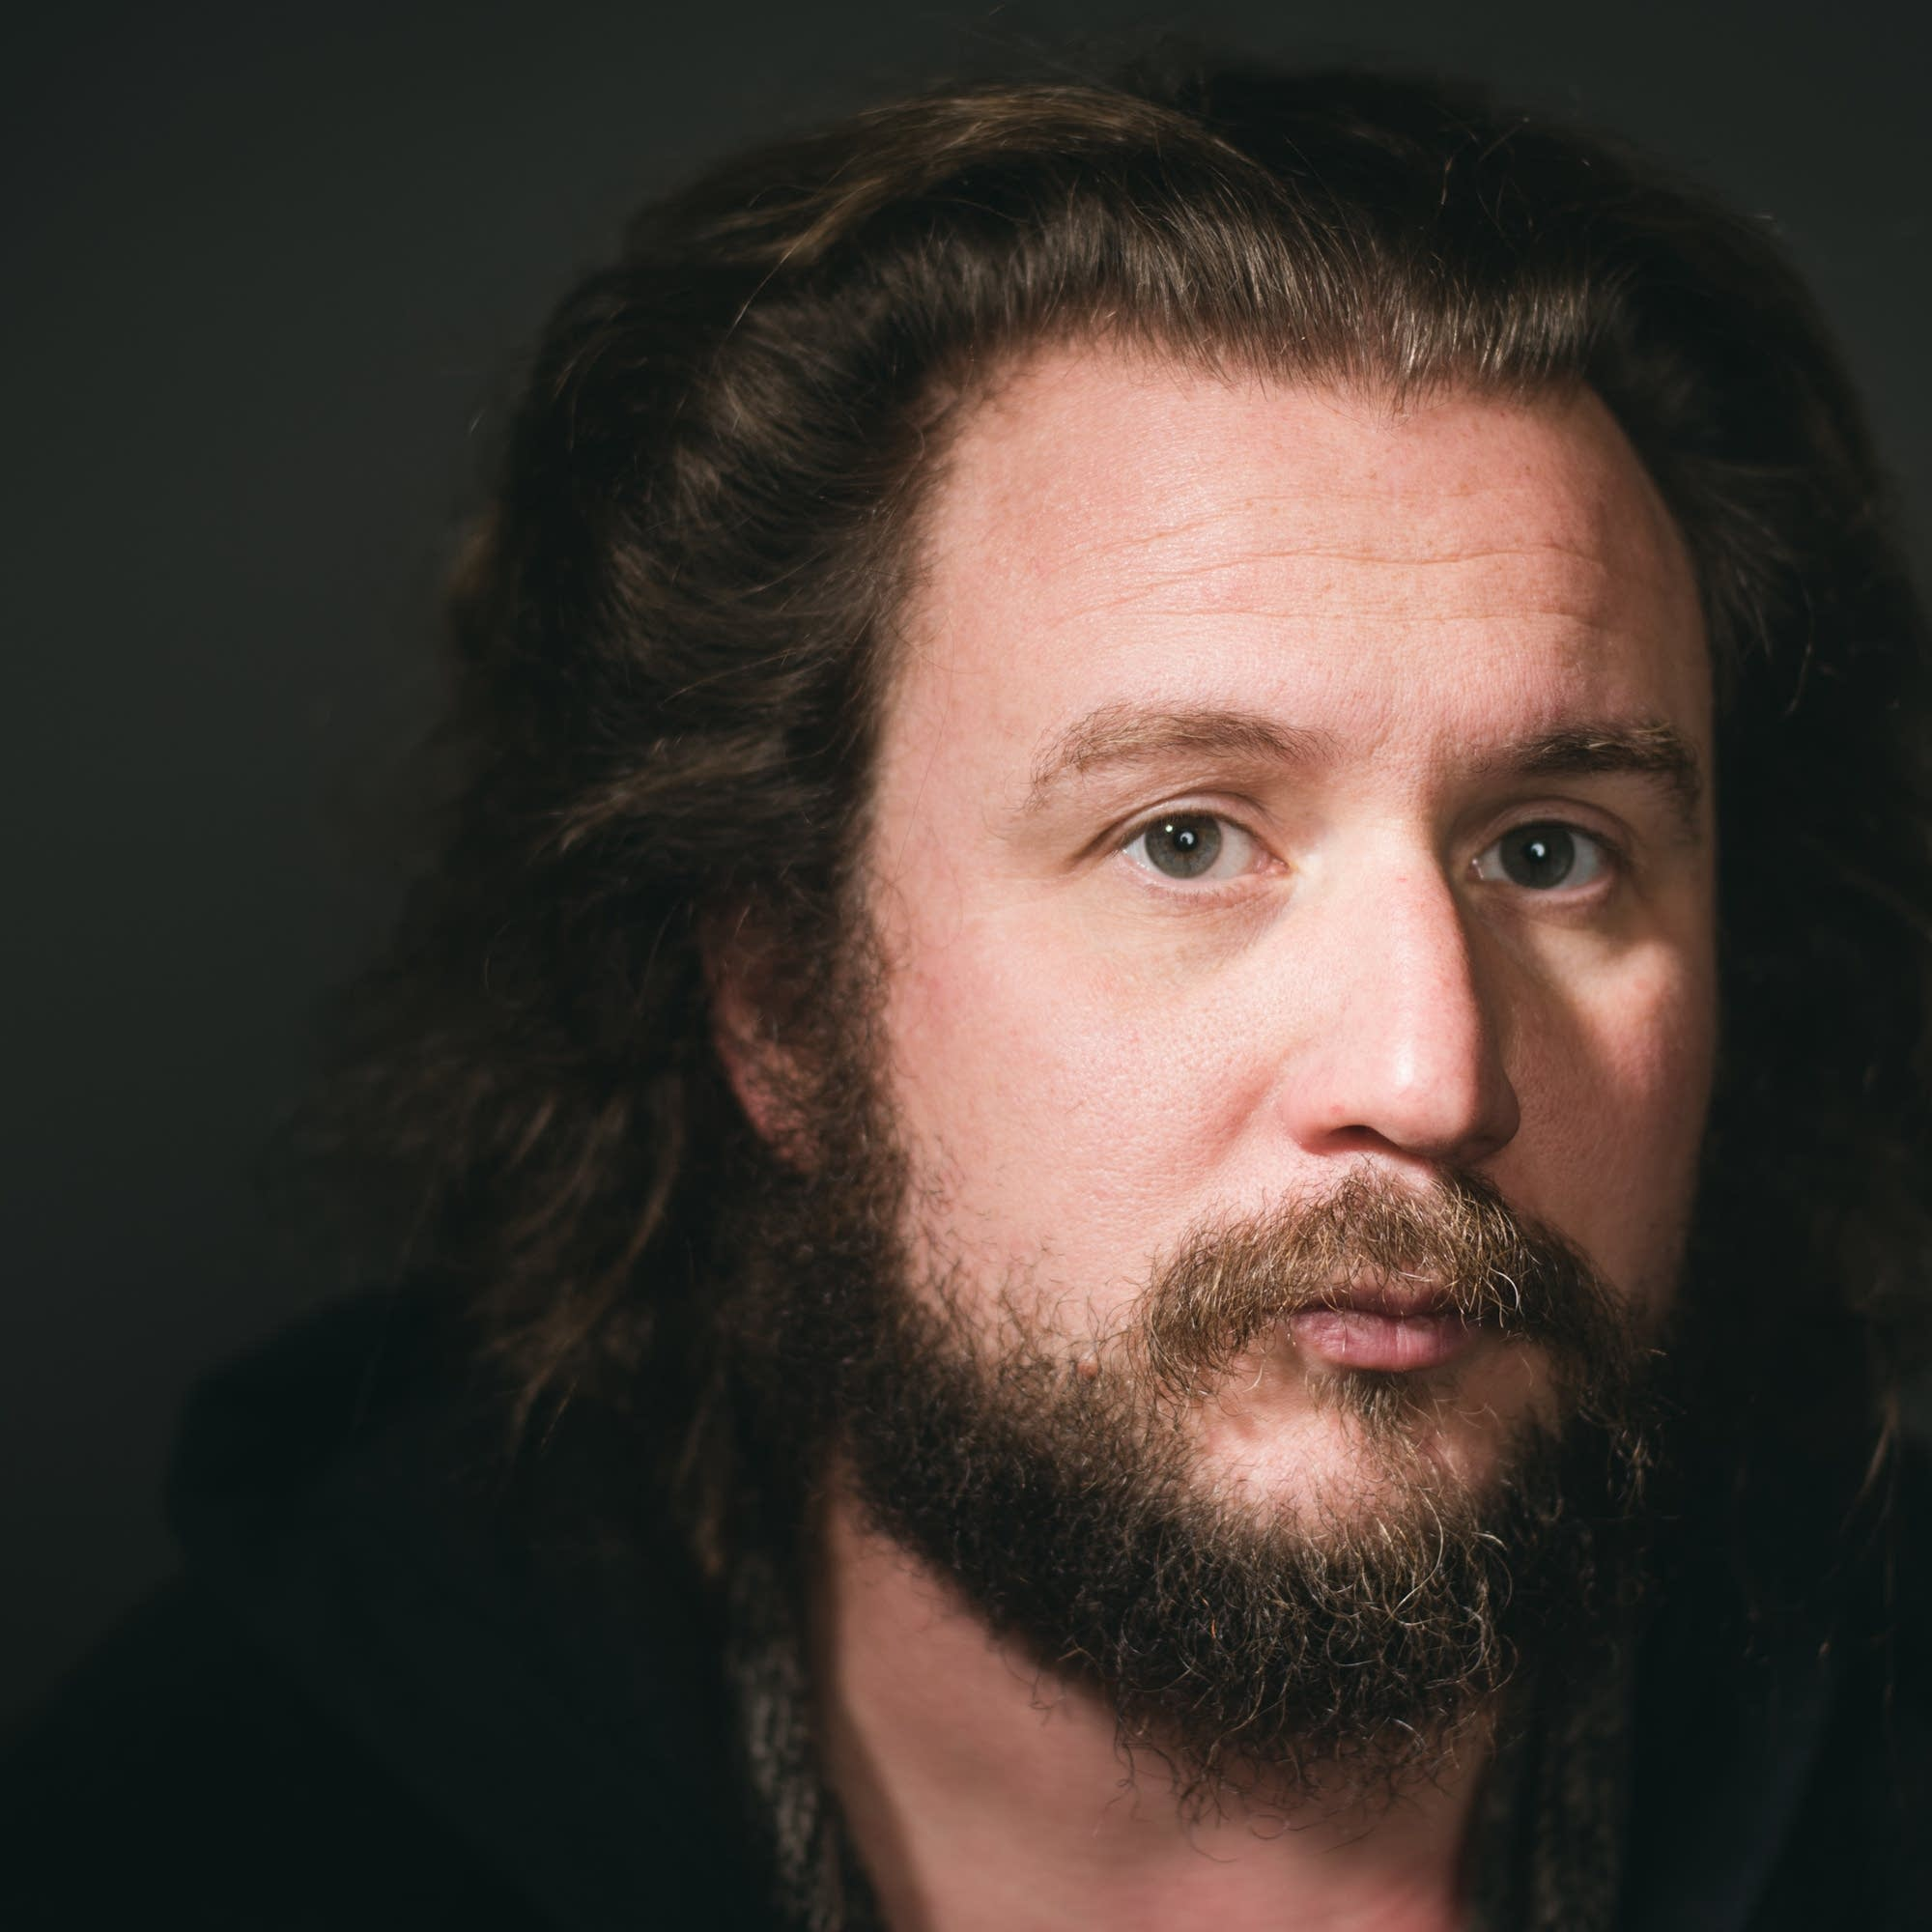 Jim James portrait